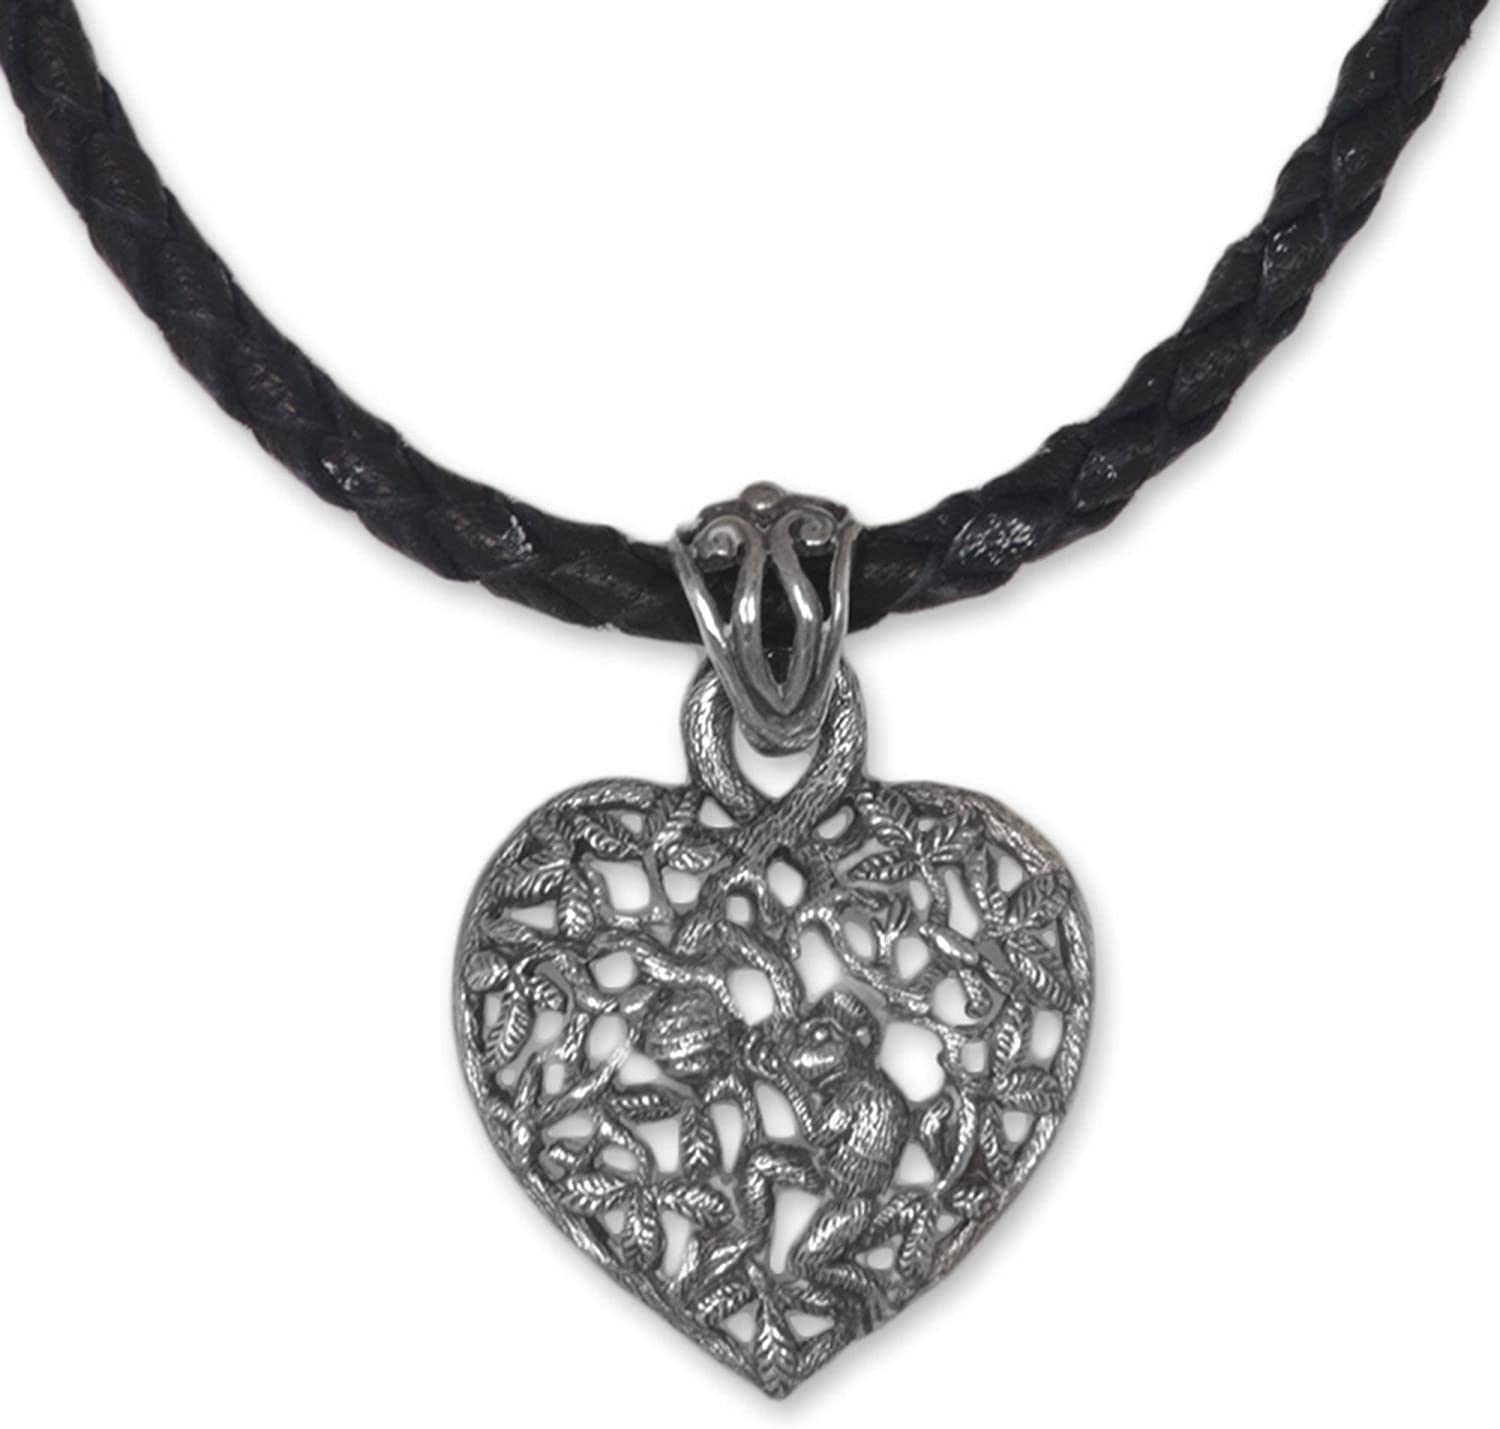 NOVICA Houston Mall .925 Sterling Silver Super sale period limited Heart on Leat Pendant Black Necklace